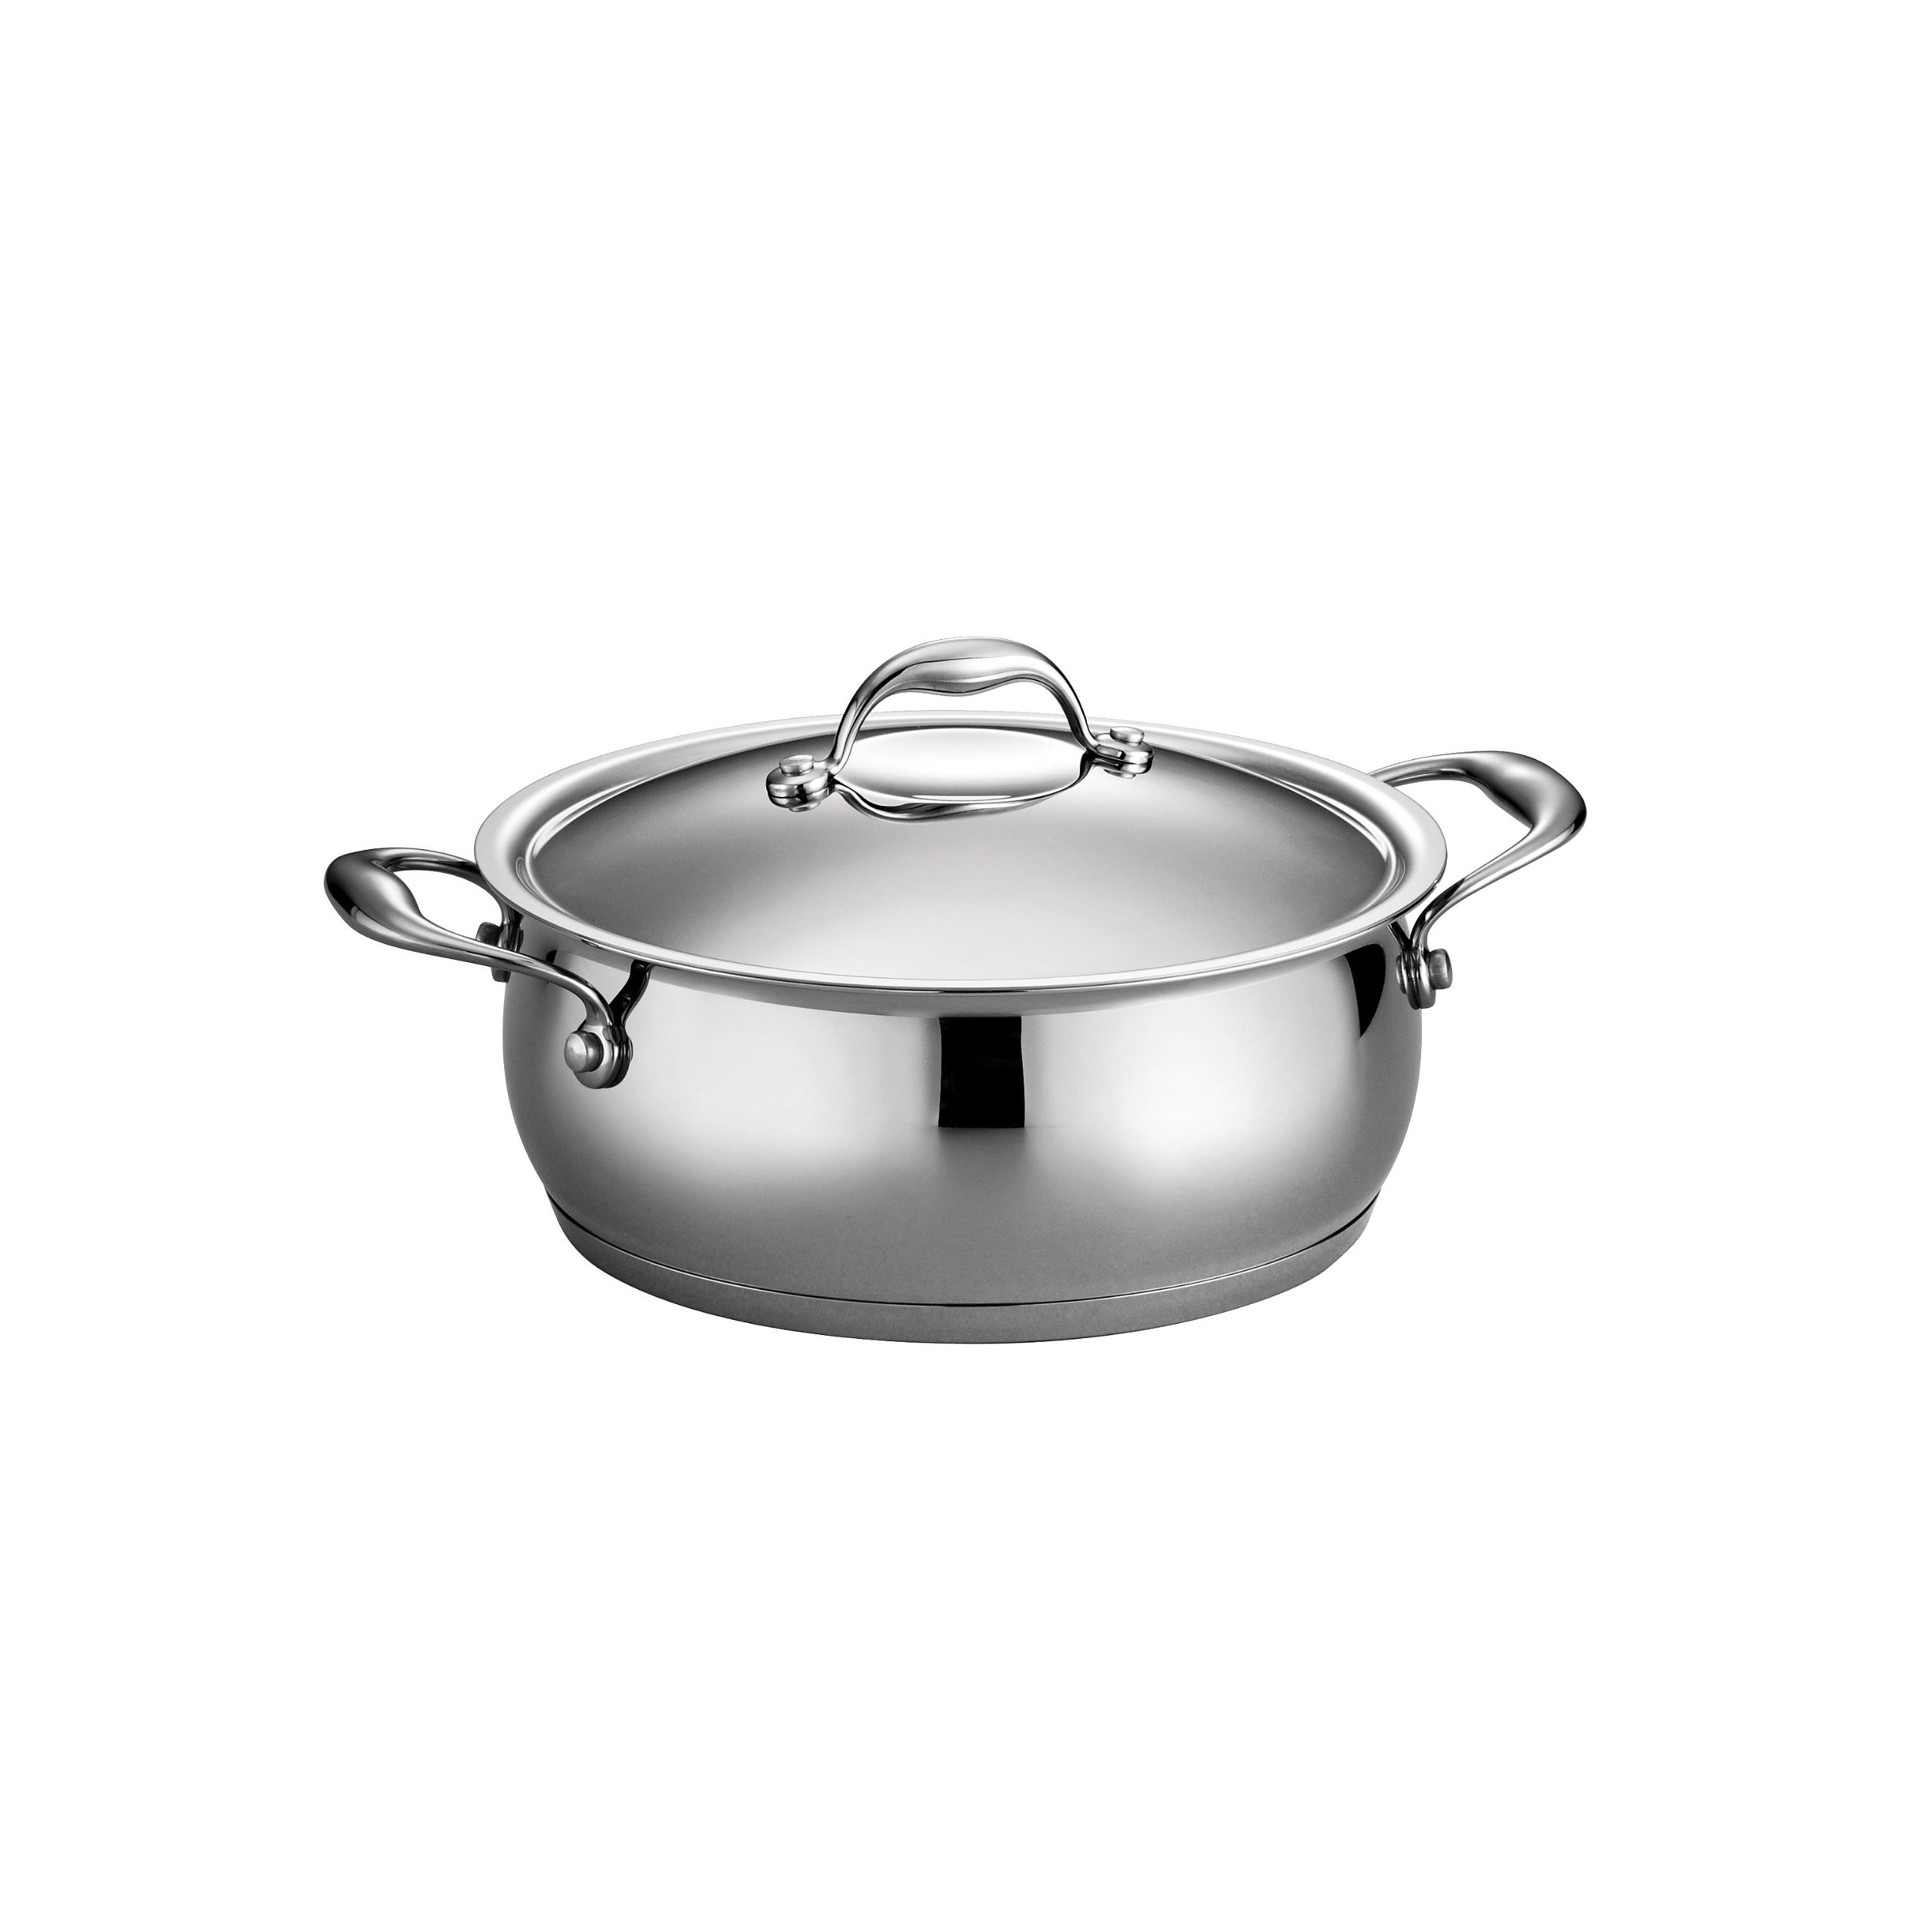 Tramontina 80102/008DS Gourmet Domus Stainless Steel, Induction-Ready, Impact-Bonded, Tri-Ply Base Covered Dutch Oven, 5 Quart, Made in Brazil